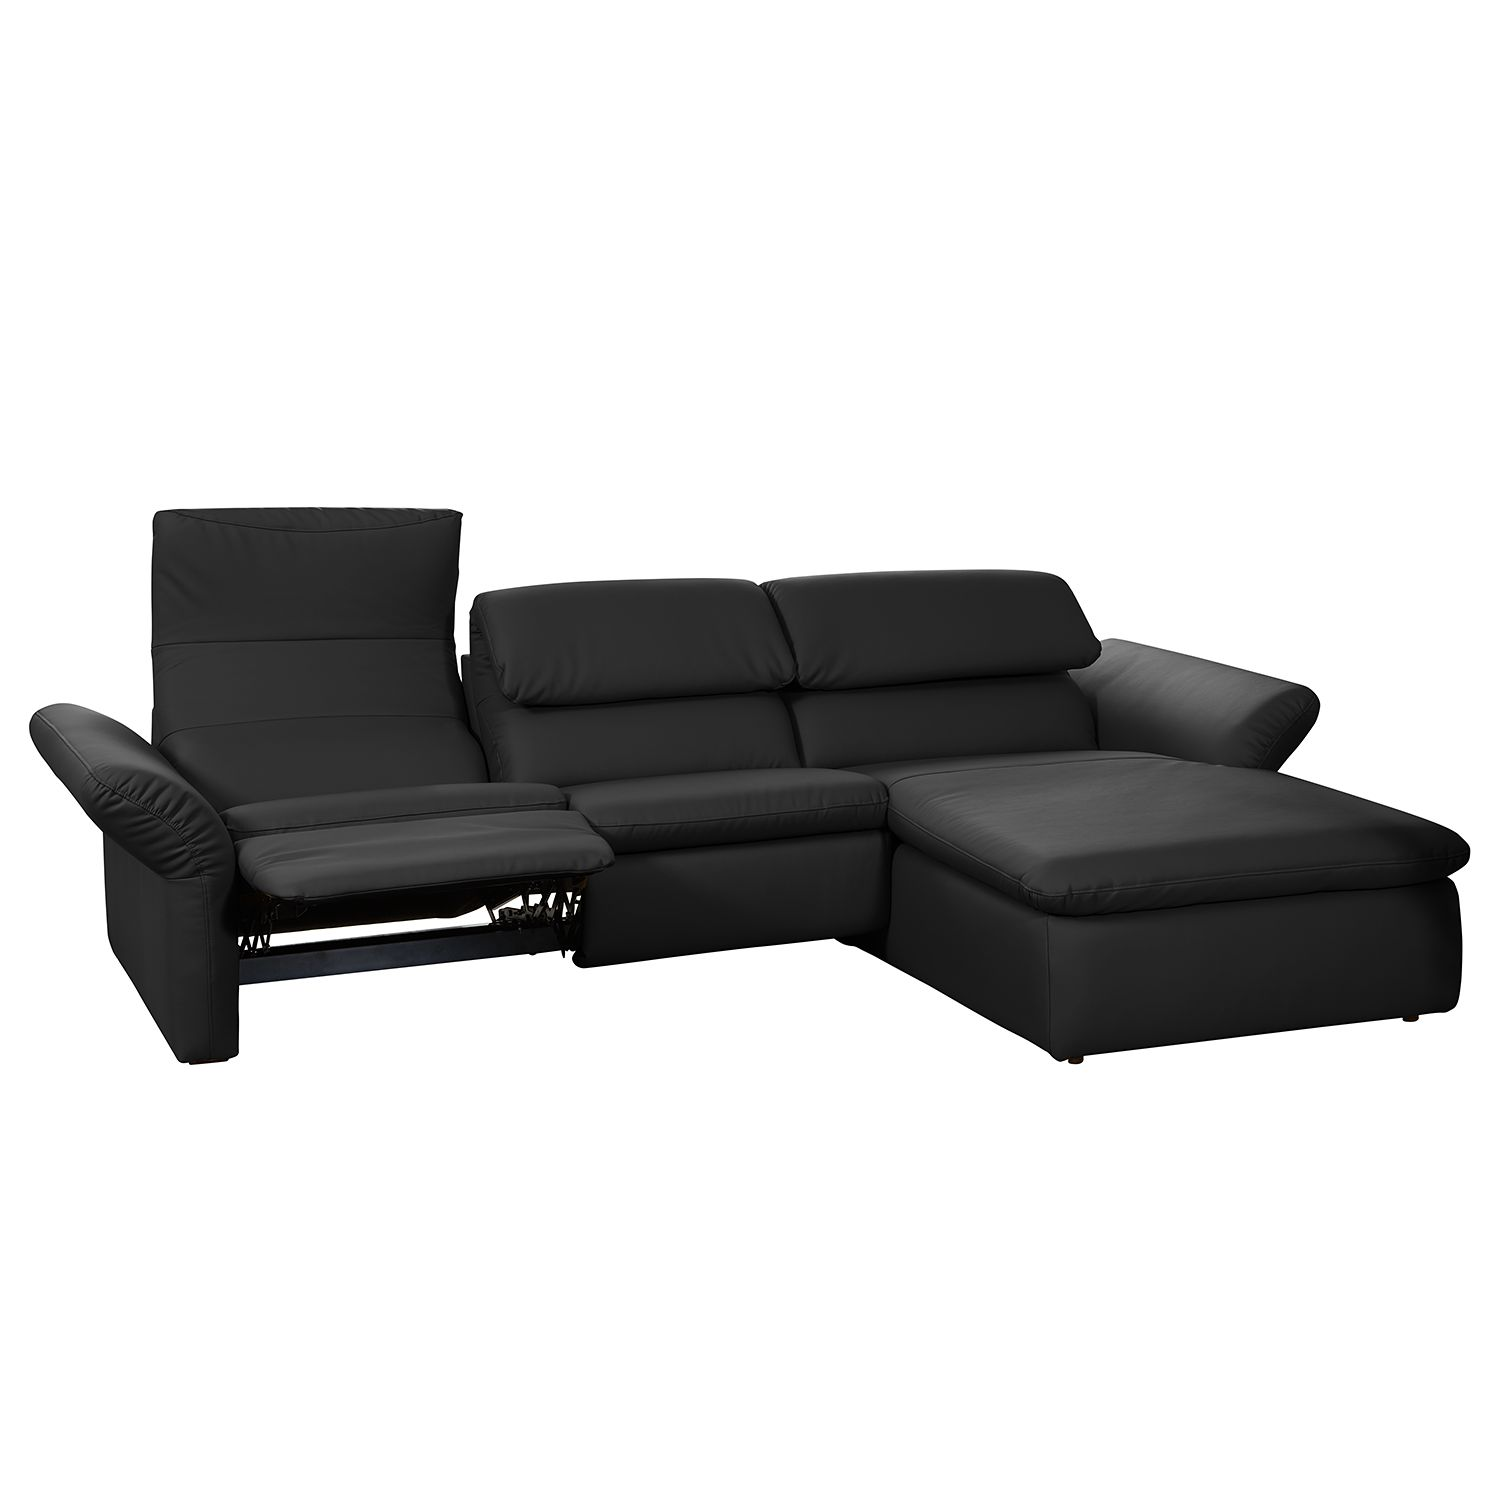 ecksofa cleos schwarz amp grau ottomane rechts ecksofa. Black Bedroom Furniture Sets. Home Design Ideas